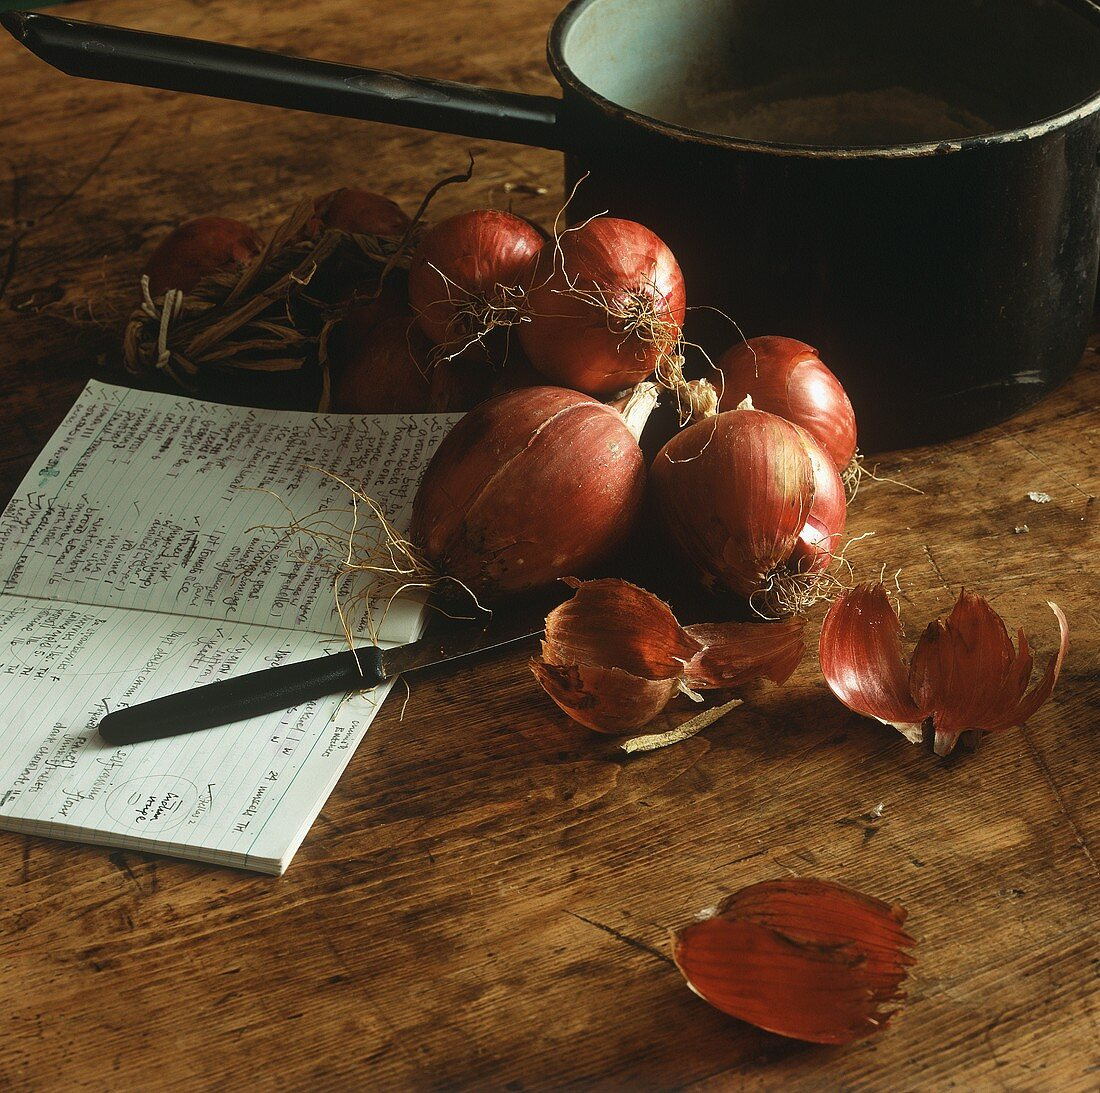 Red onions, a note book, a knife and a saucepan